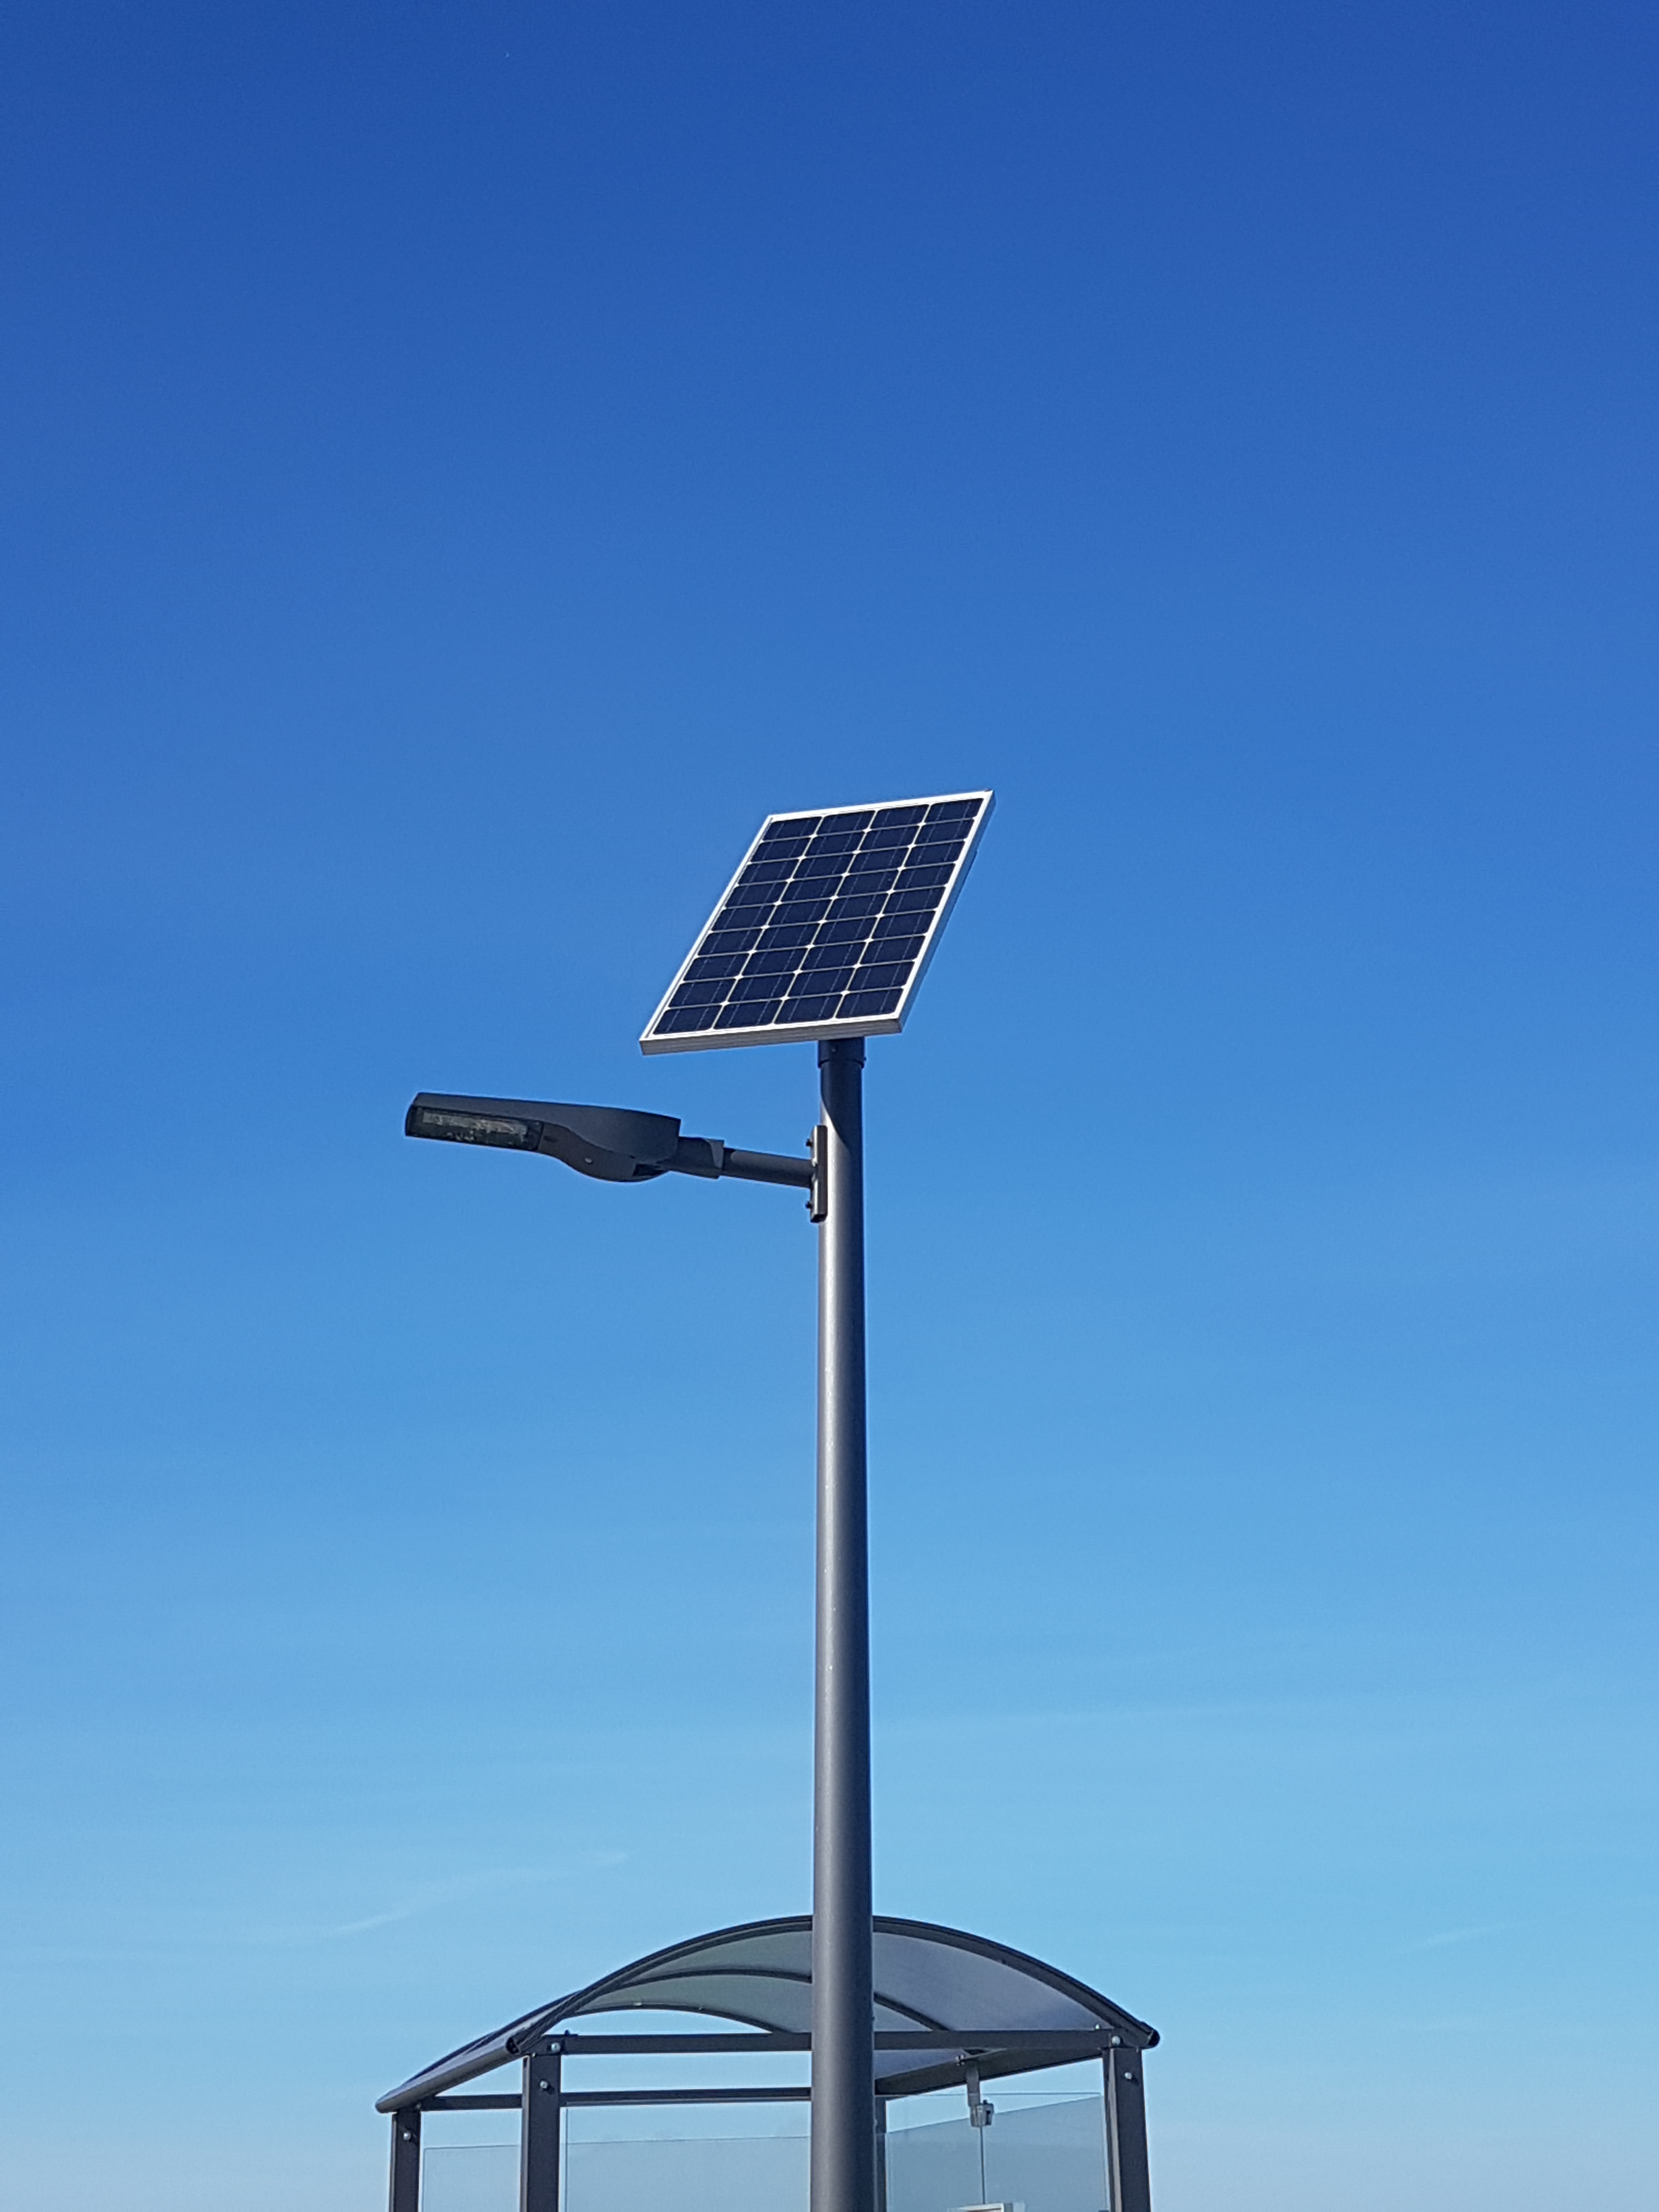 A SOLAR STREET LAMP TO ILLUMINATE THE STOP FOR TRAVELERS OF